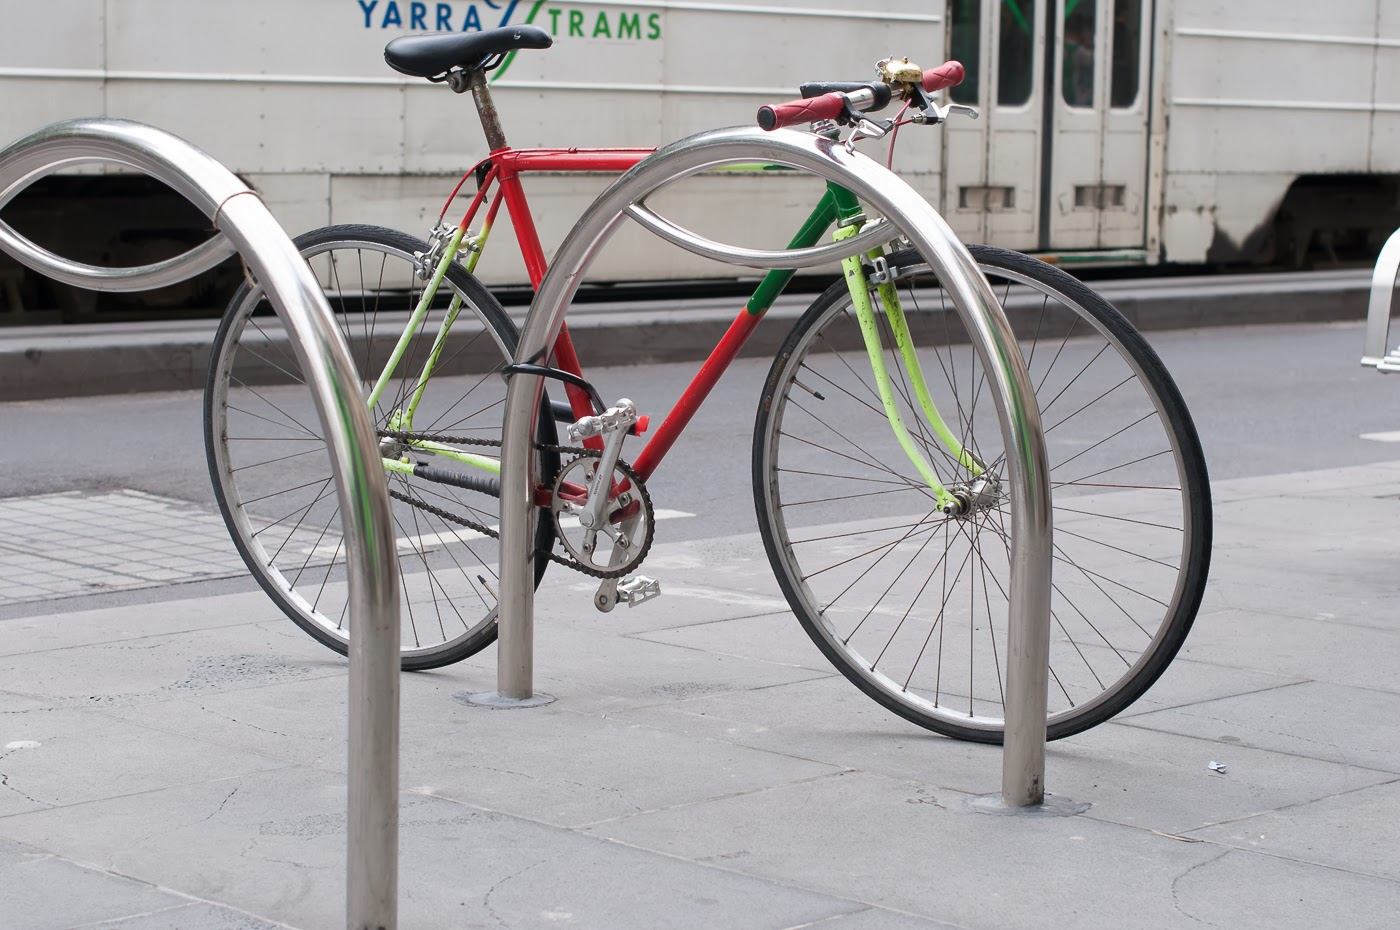 Pub bike, bike, bicycle, conversion, road bike, tim macauley, the biketorialist, Melbourne, Australia, swanston st, frame